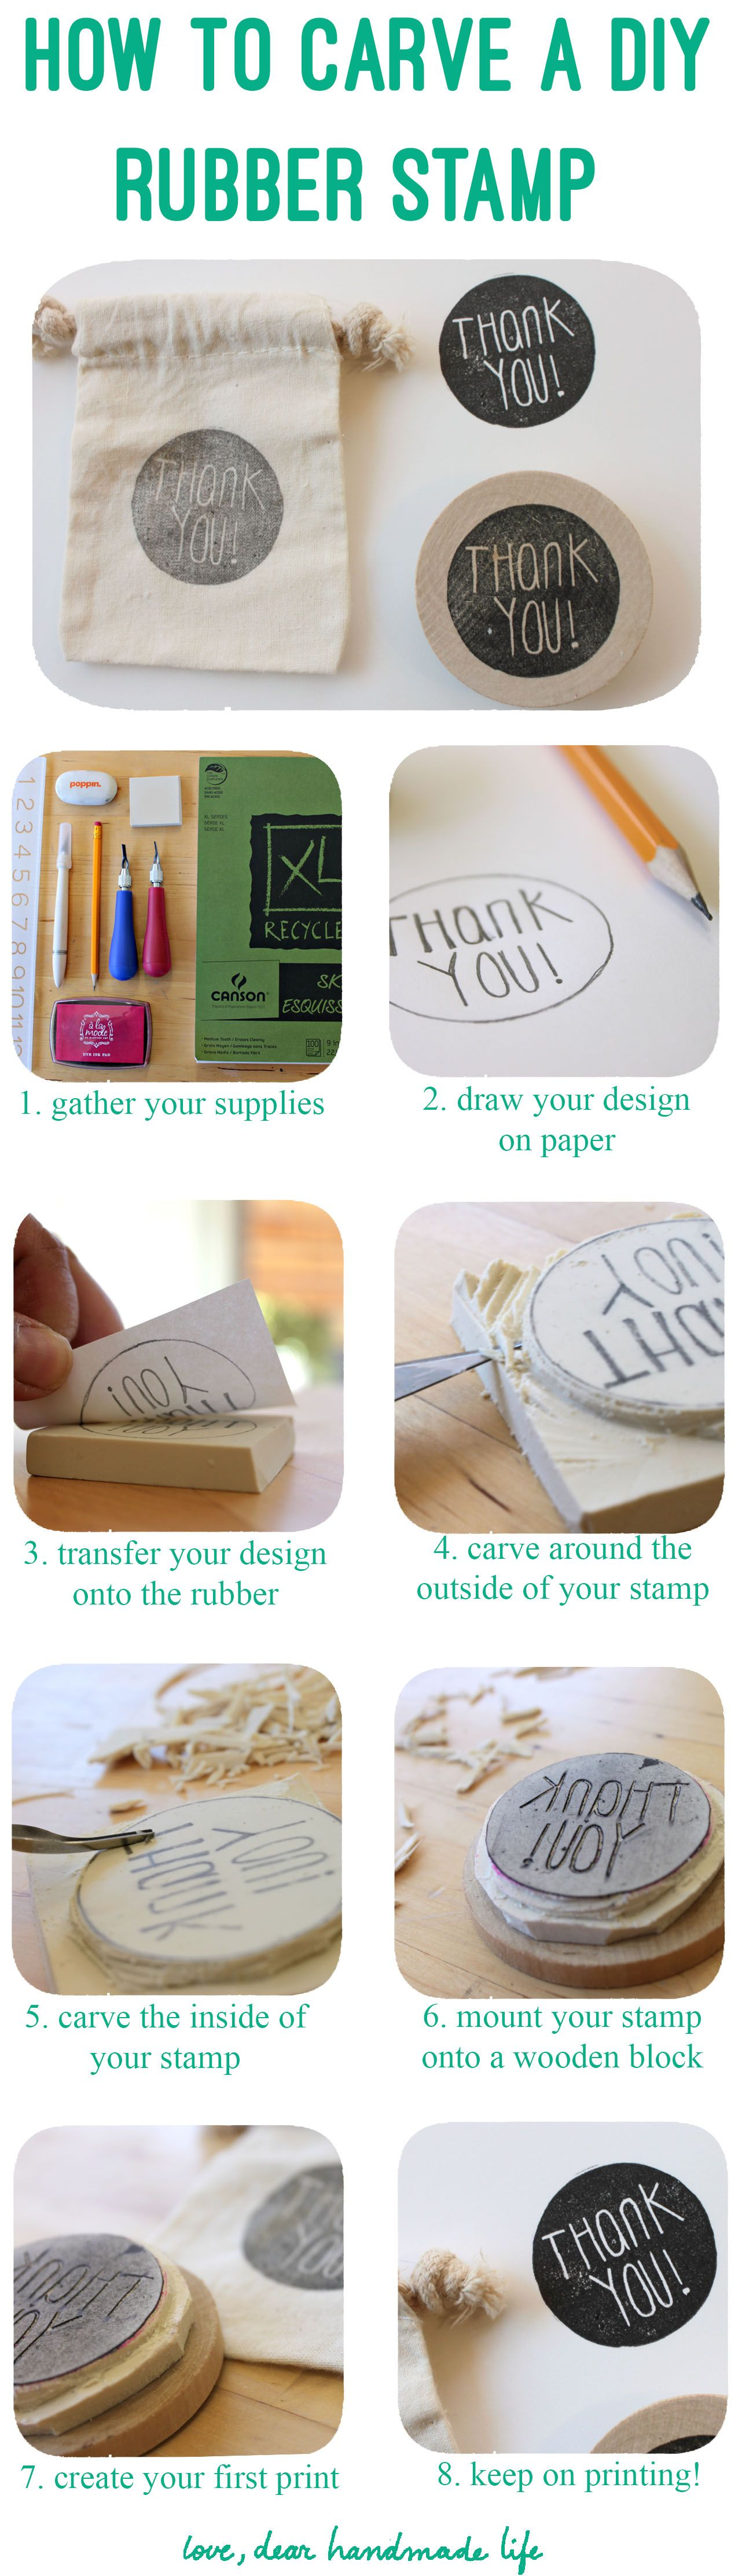 Stempel Selbstgemacht How To Make A Diy Carved Rubber Stamp Print